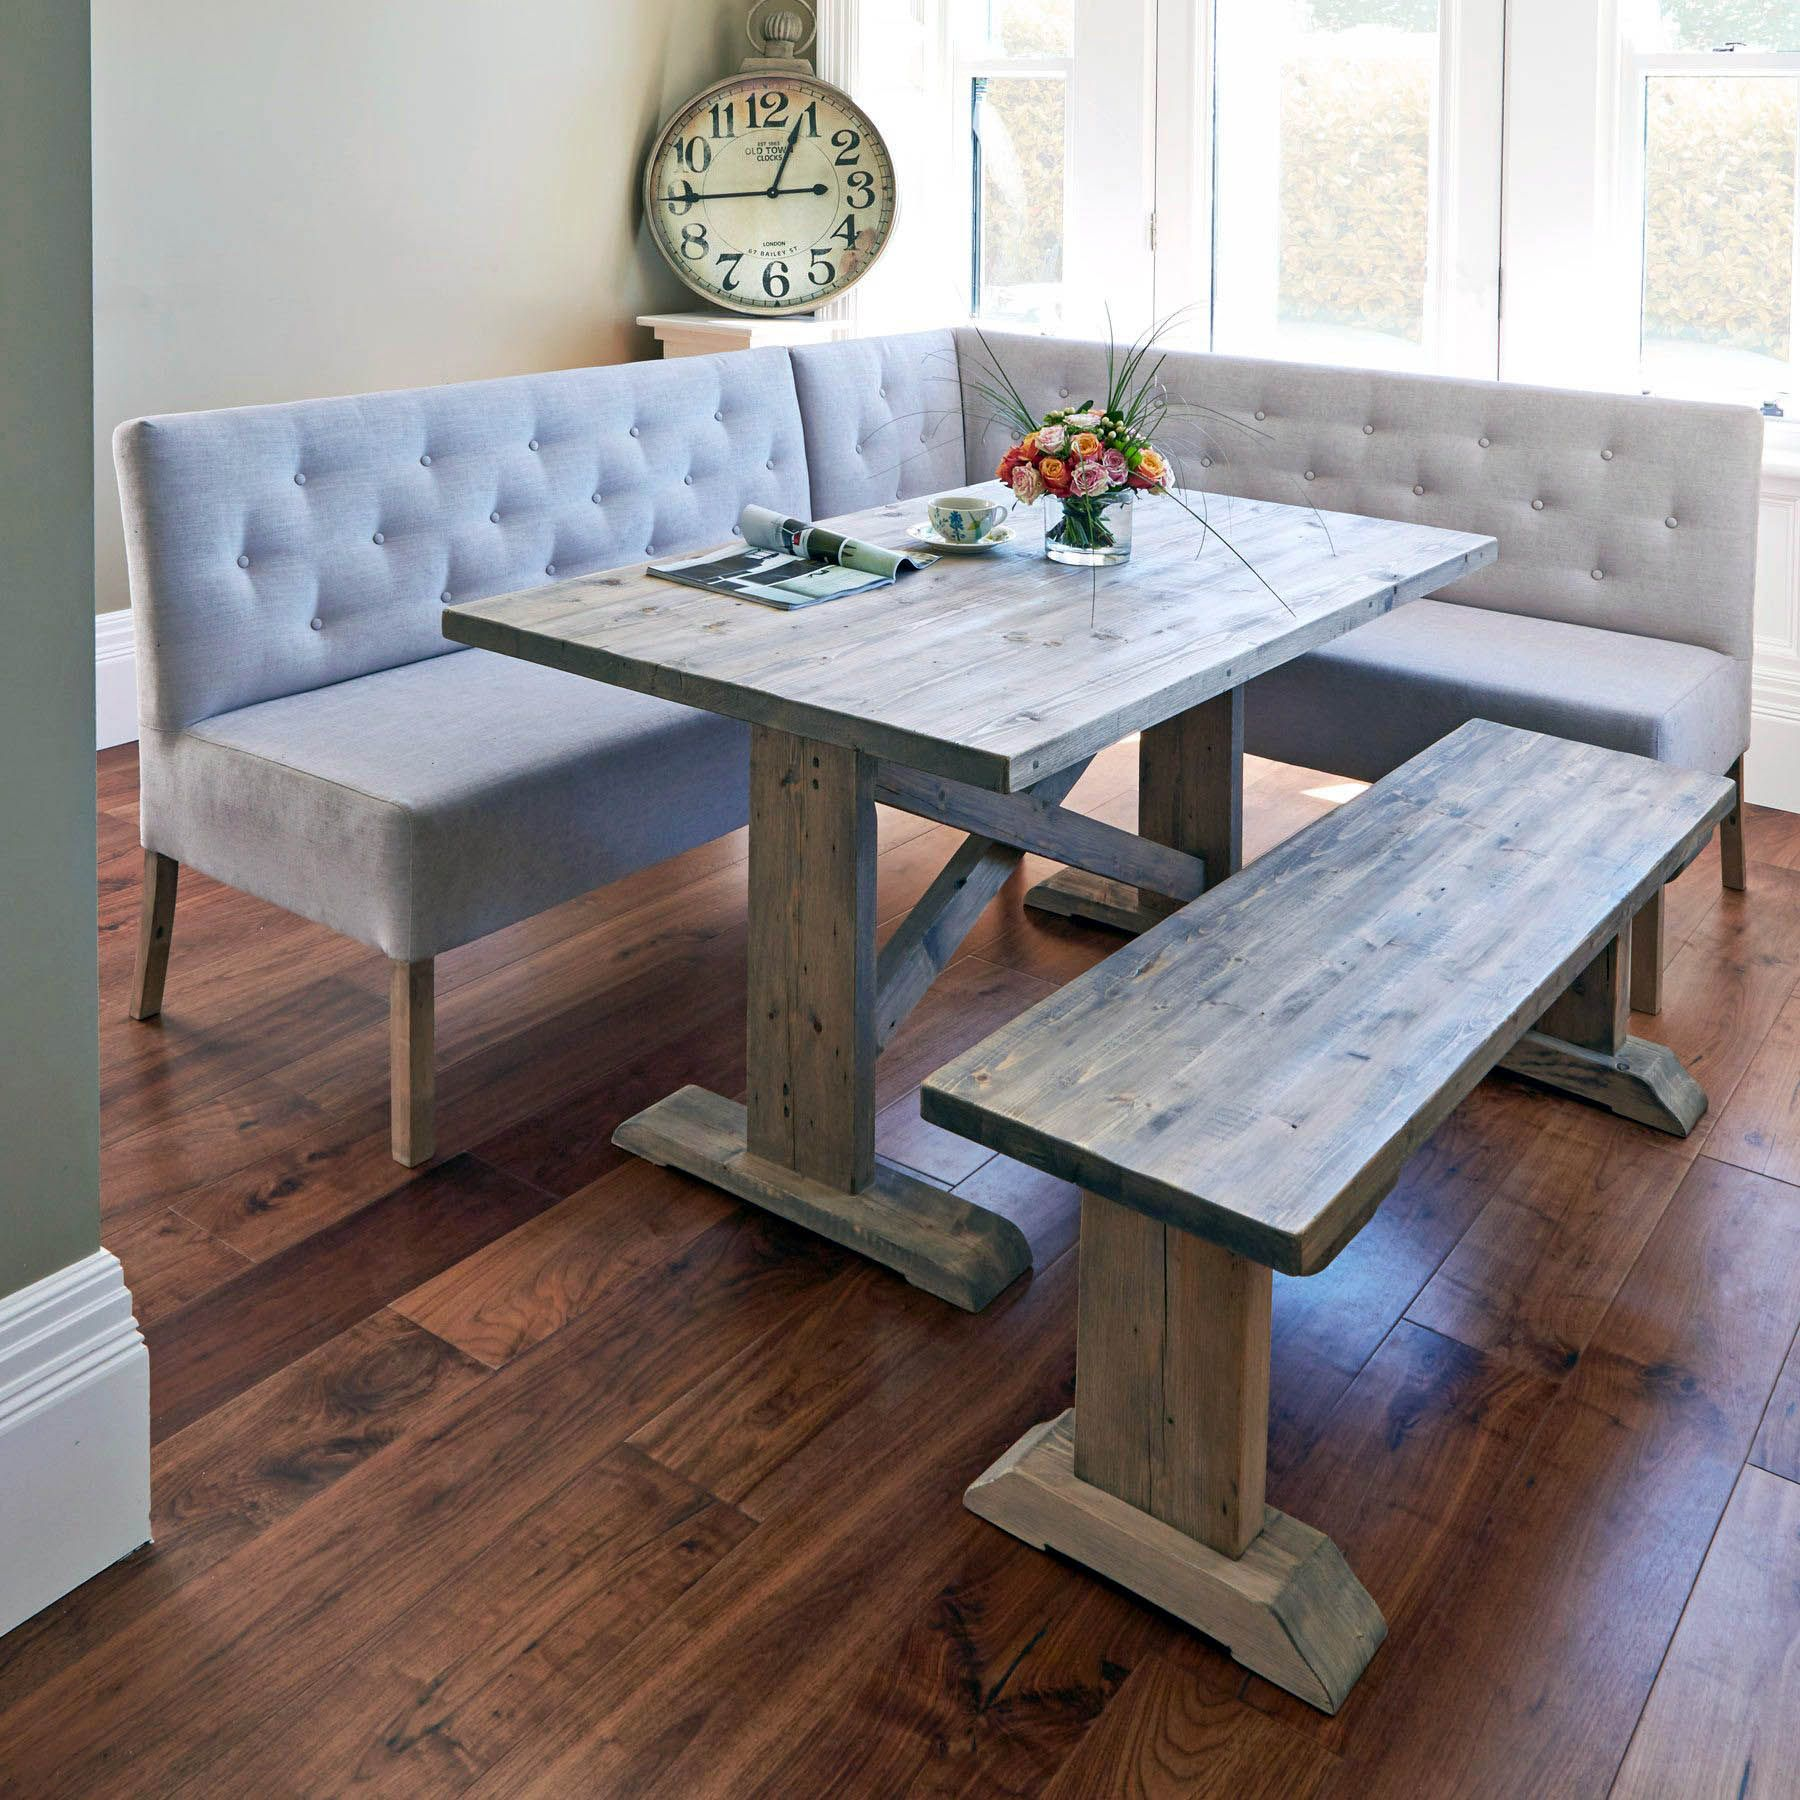 New Corner Kitchen Table Ireland Exclusive On Smart Home Decor Small Dining Room Table Dining Room Small Corner Dining Table Small kitchen tables with bench